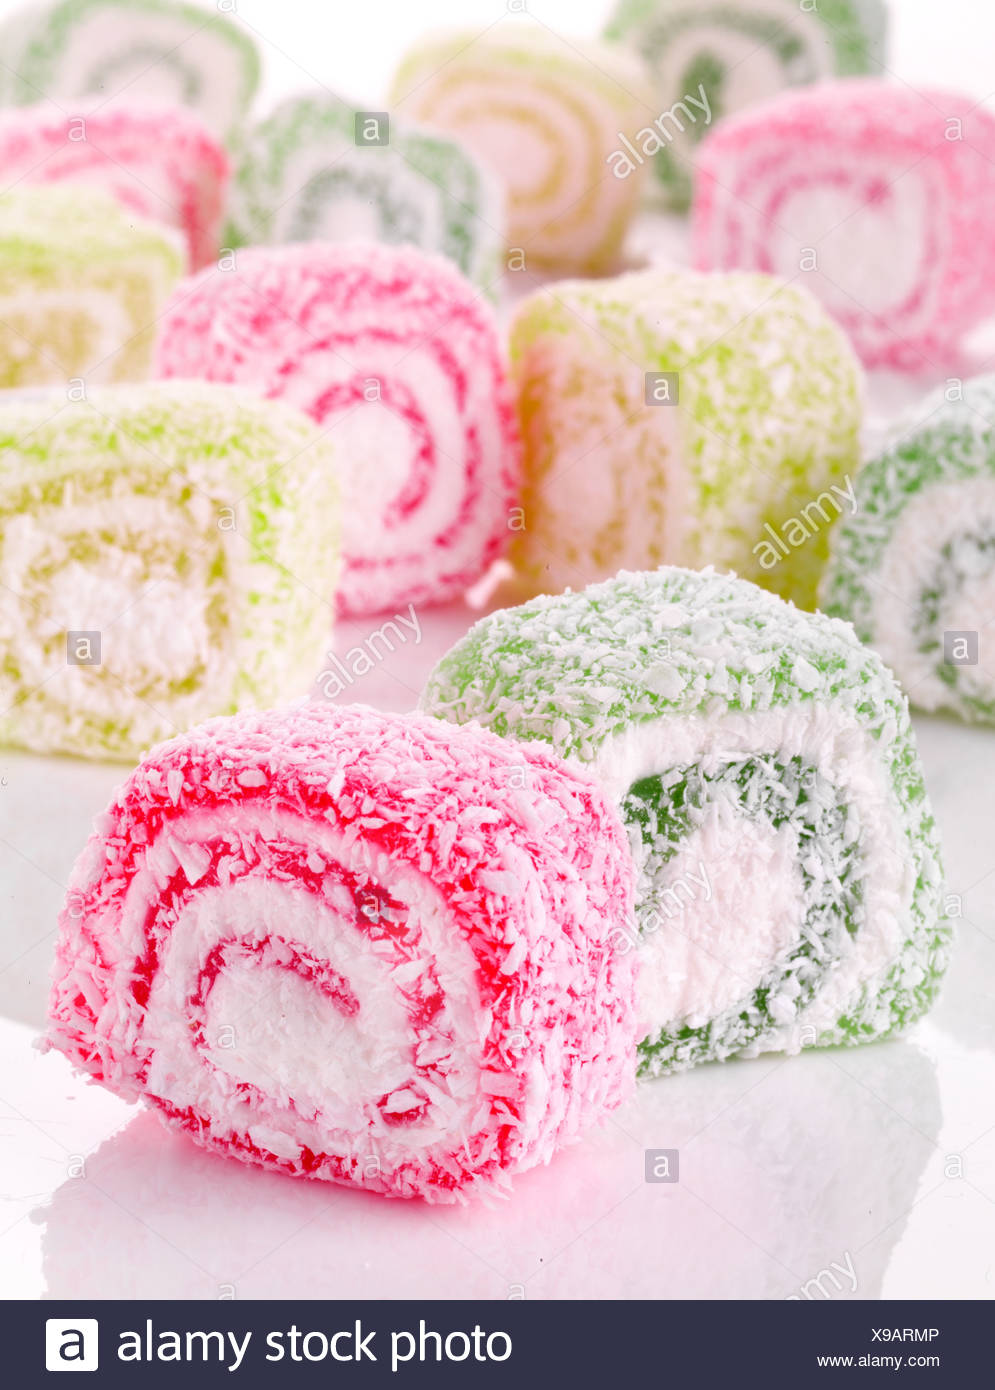 SPIRAL TURKISH DELIGHT - Stock Image